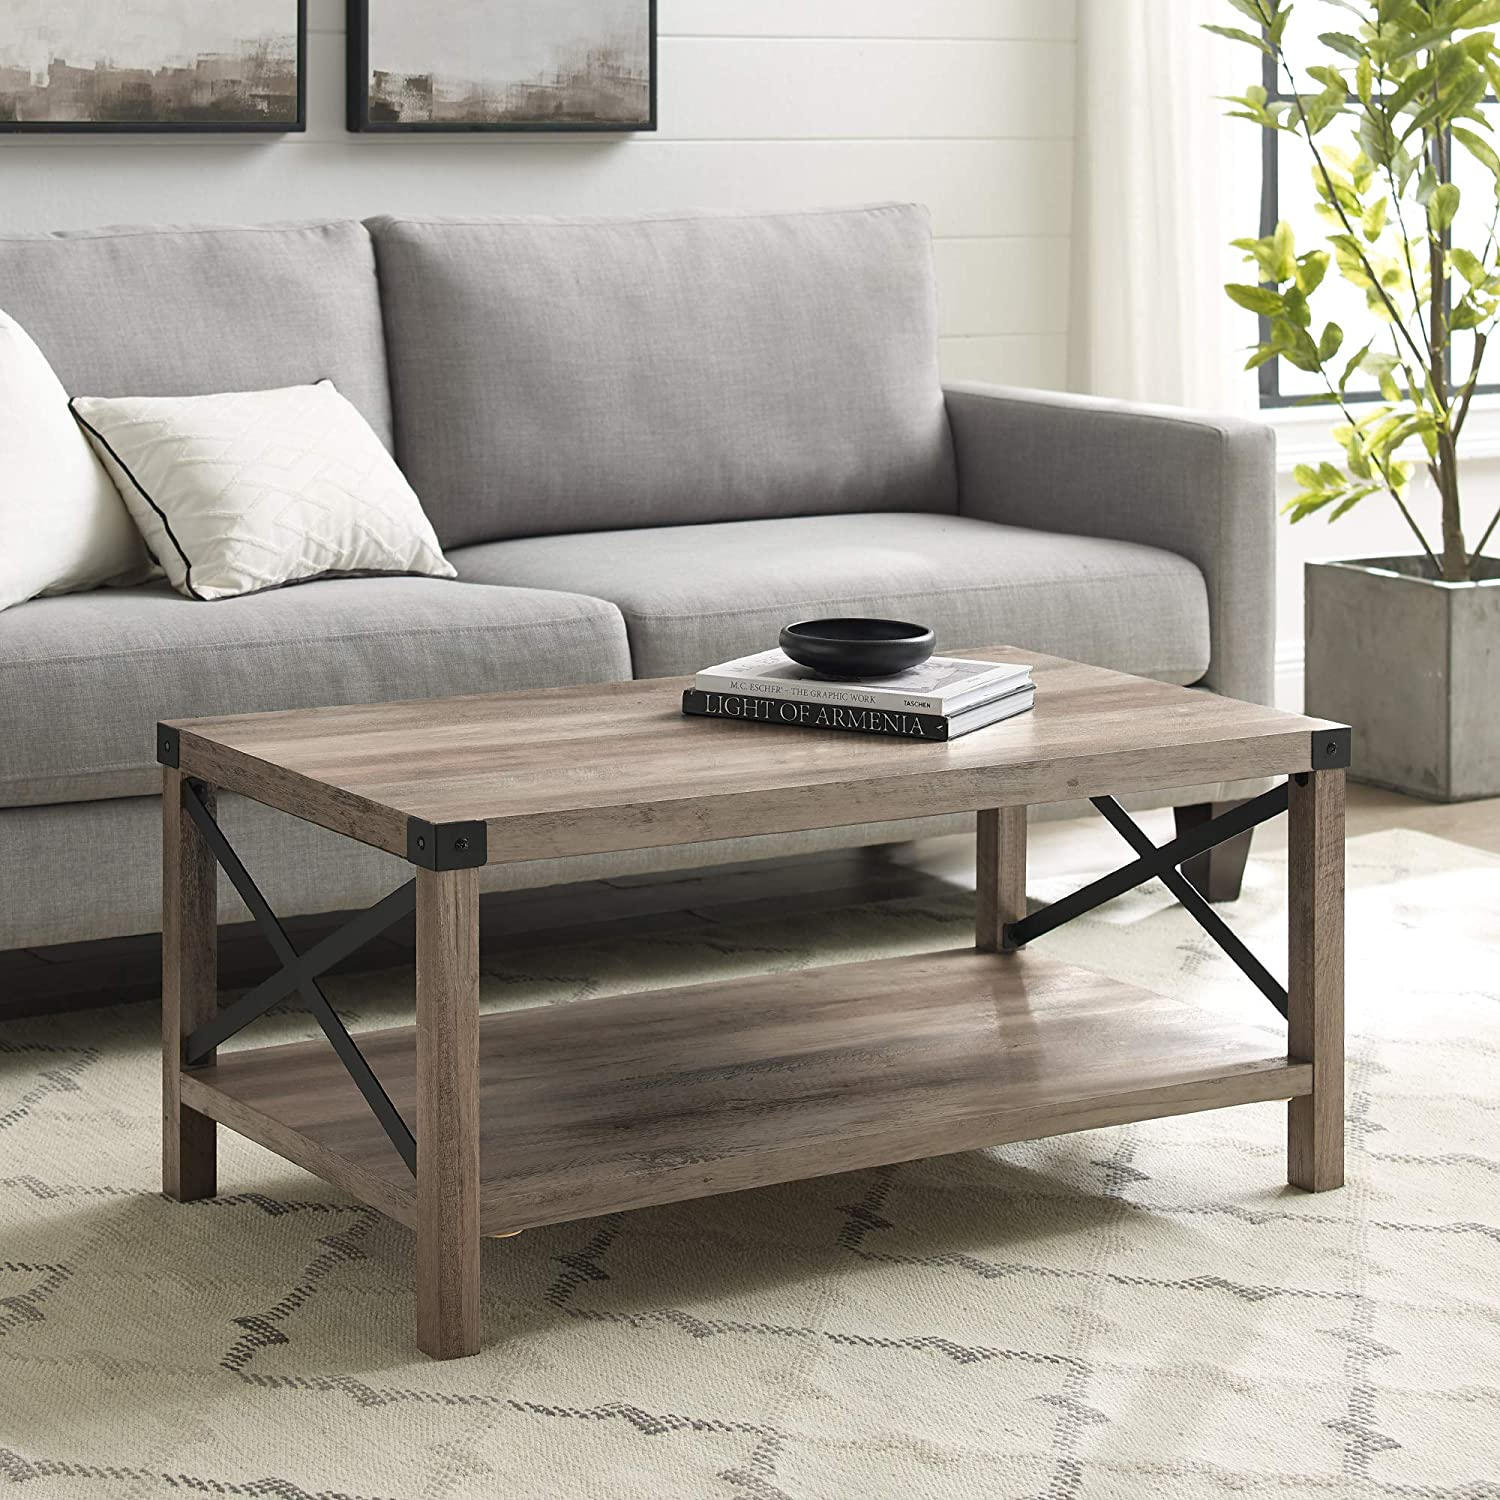 Amazon Com 40 Inch Metal X Frame Coffee Table With Grey Wash Finish Kitchen Dining